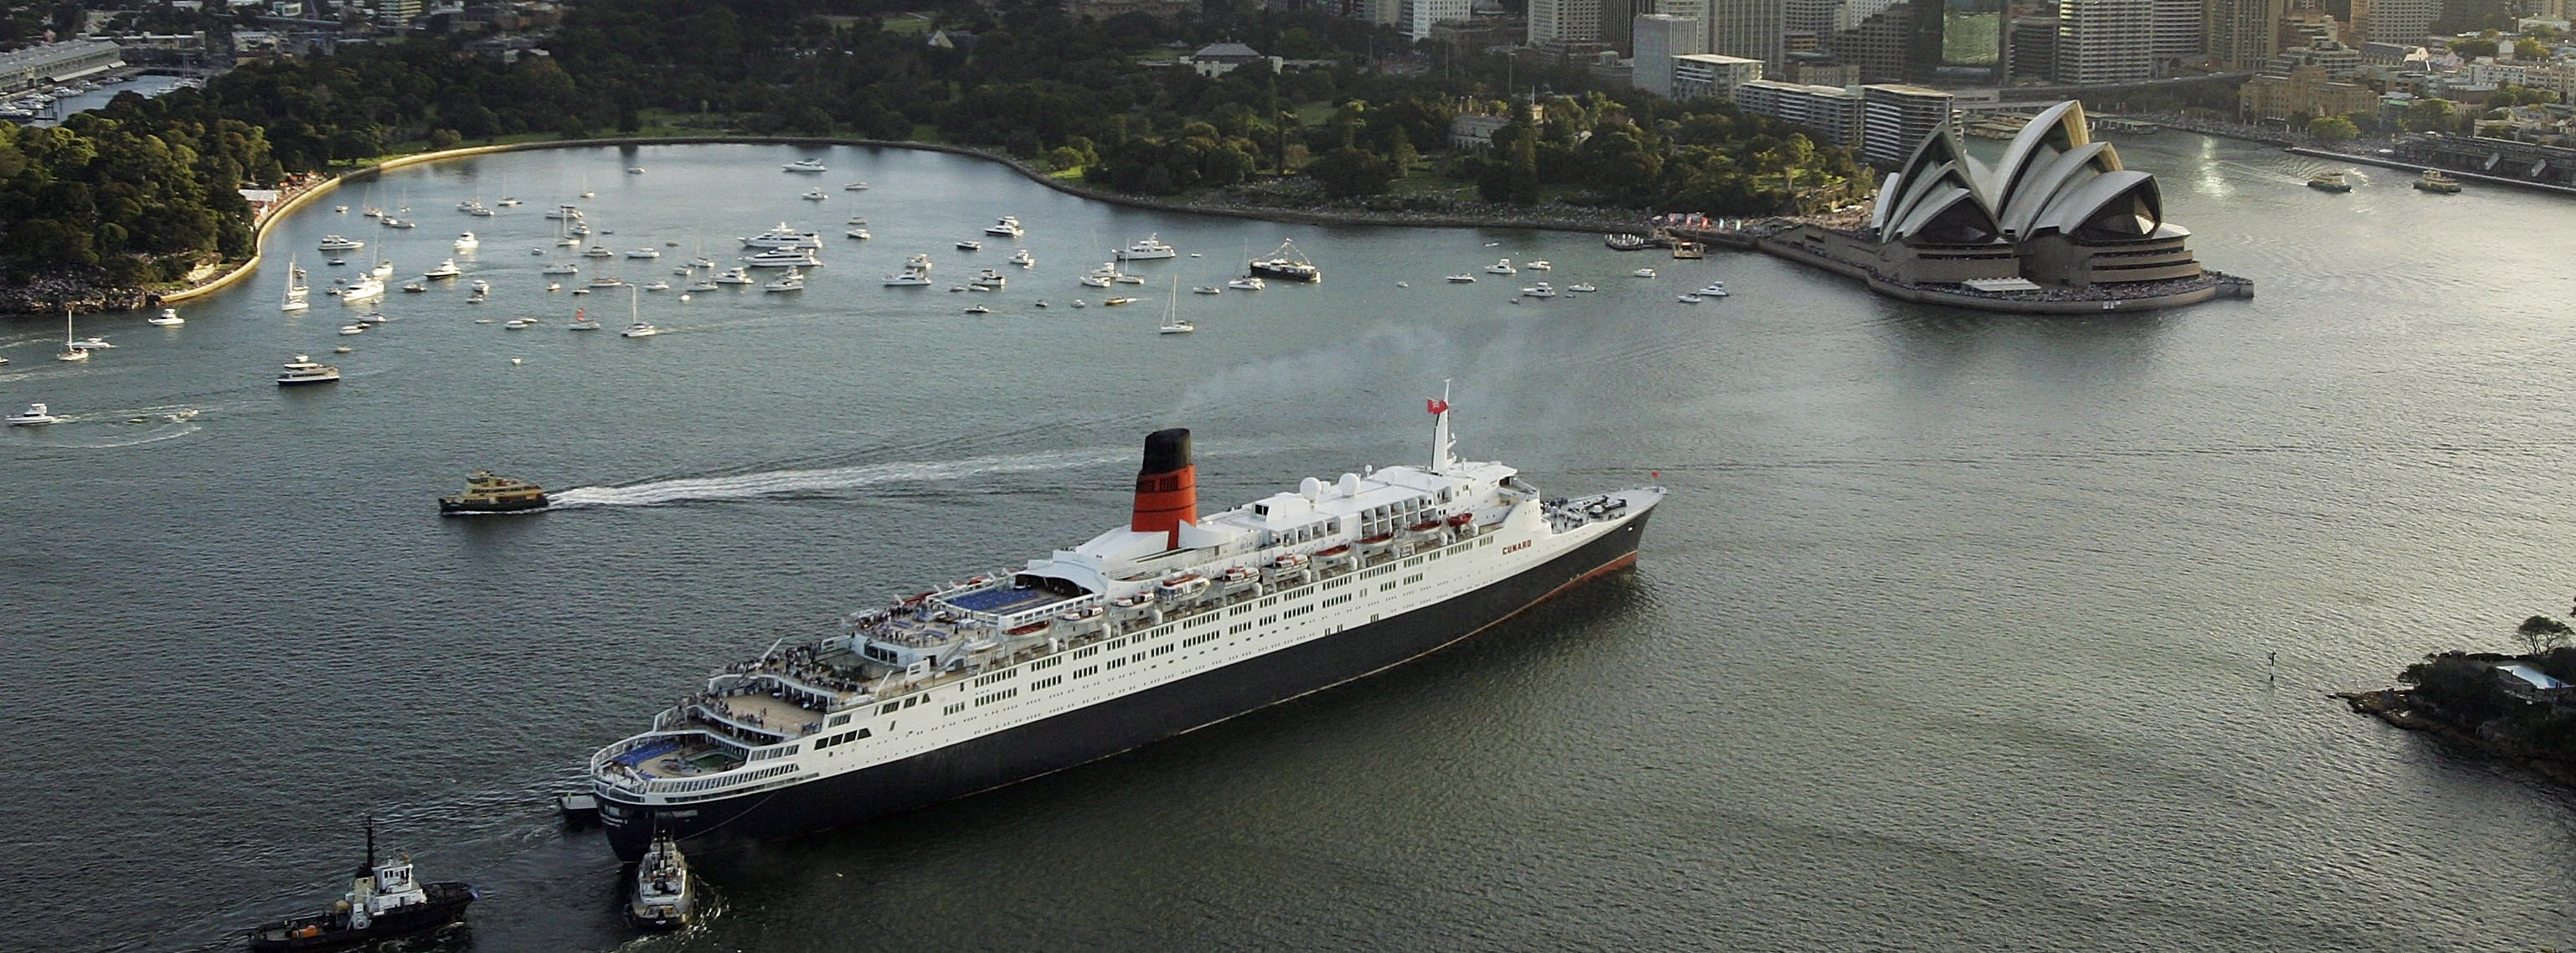 The Queen Victoria & Queen Elizabeth II Rendezvous In Sydney Harbour